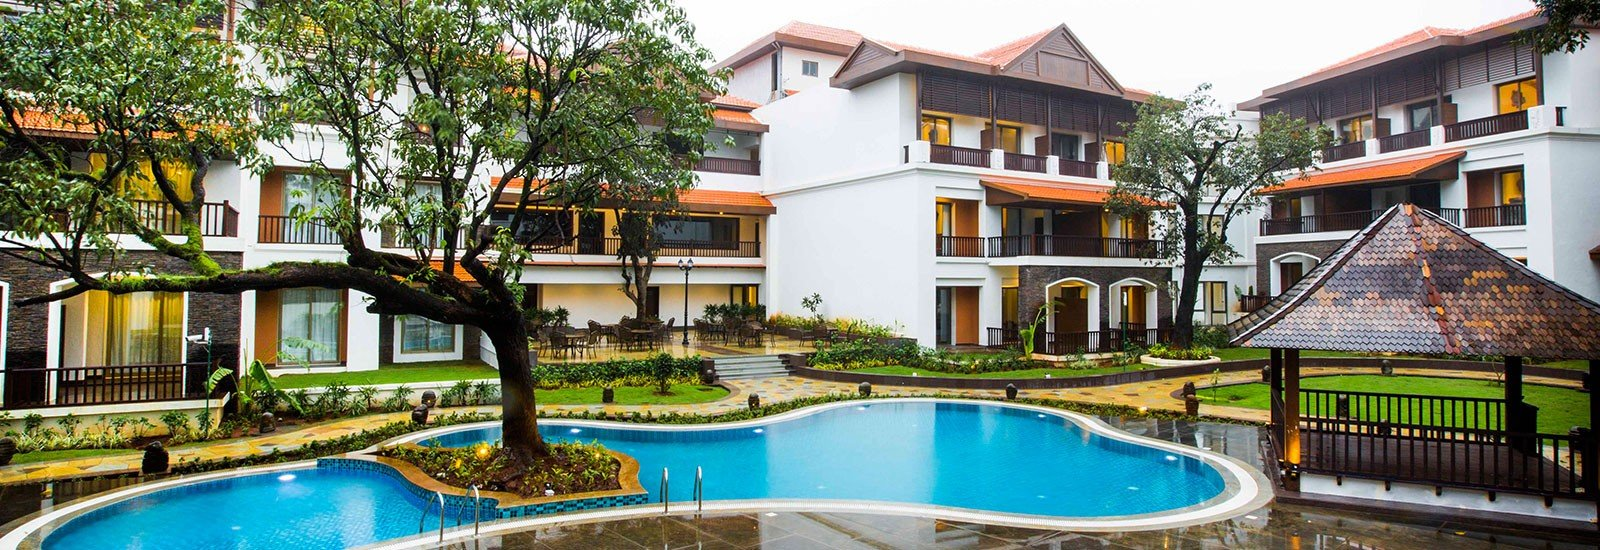 Rhythm Lonavala: An All-Suite Resort - Tour